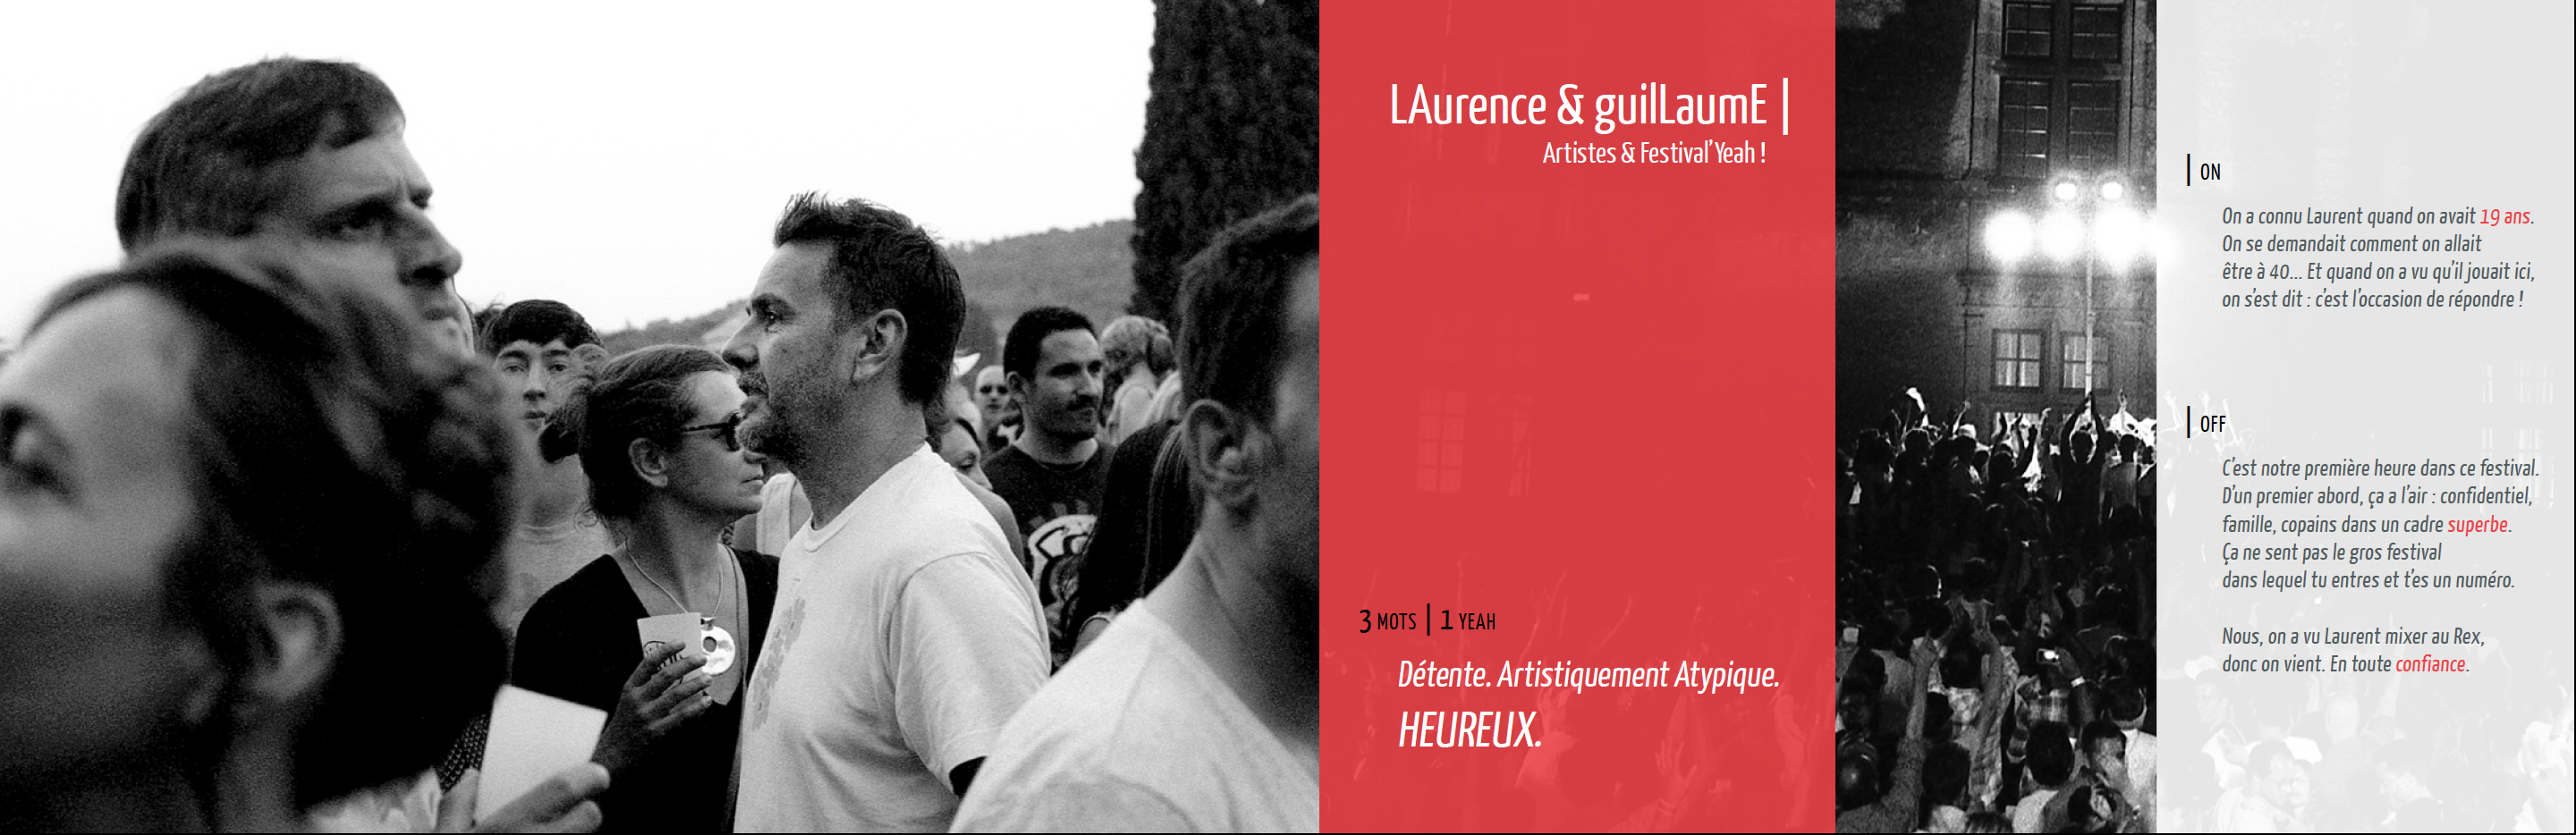 Laurence & Guillaume